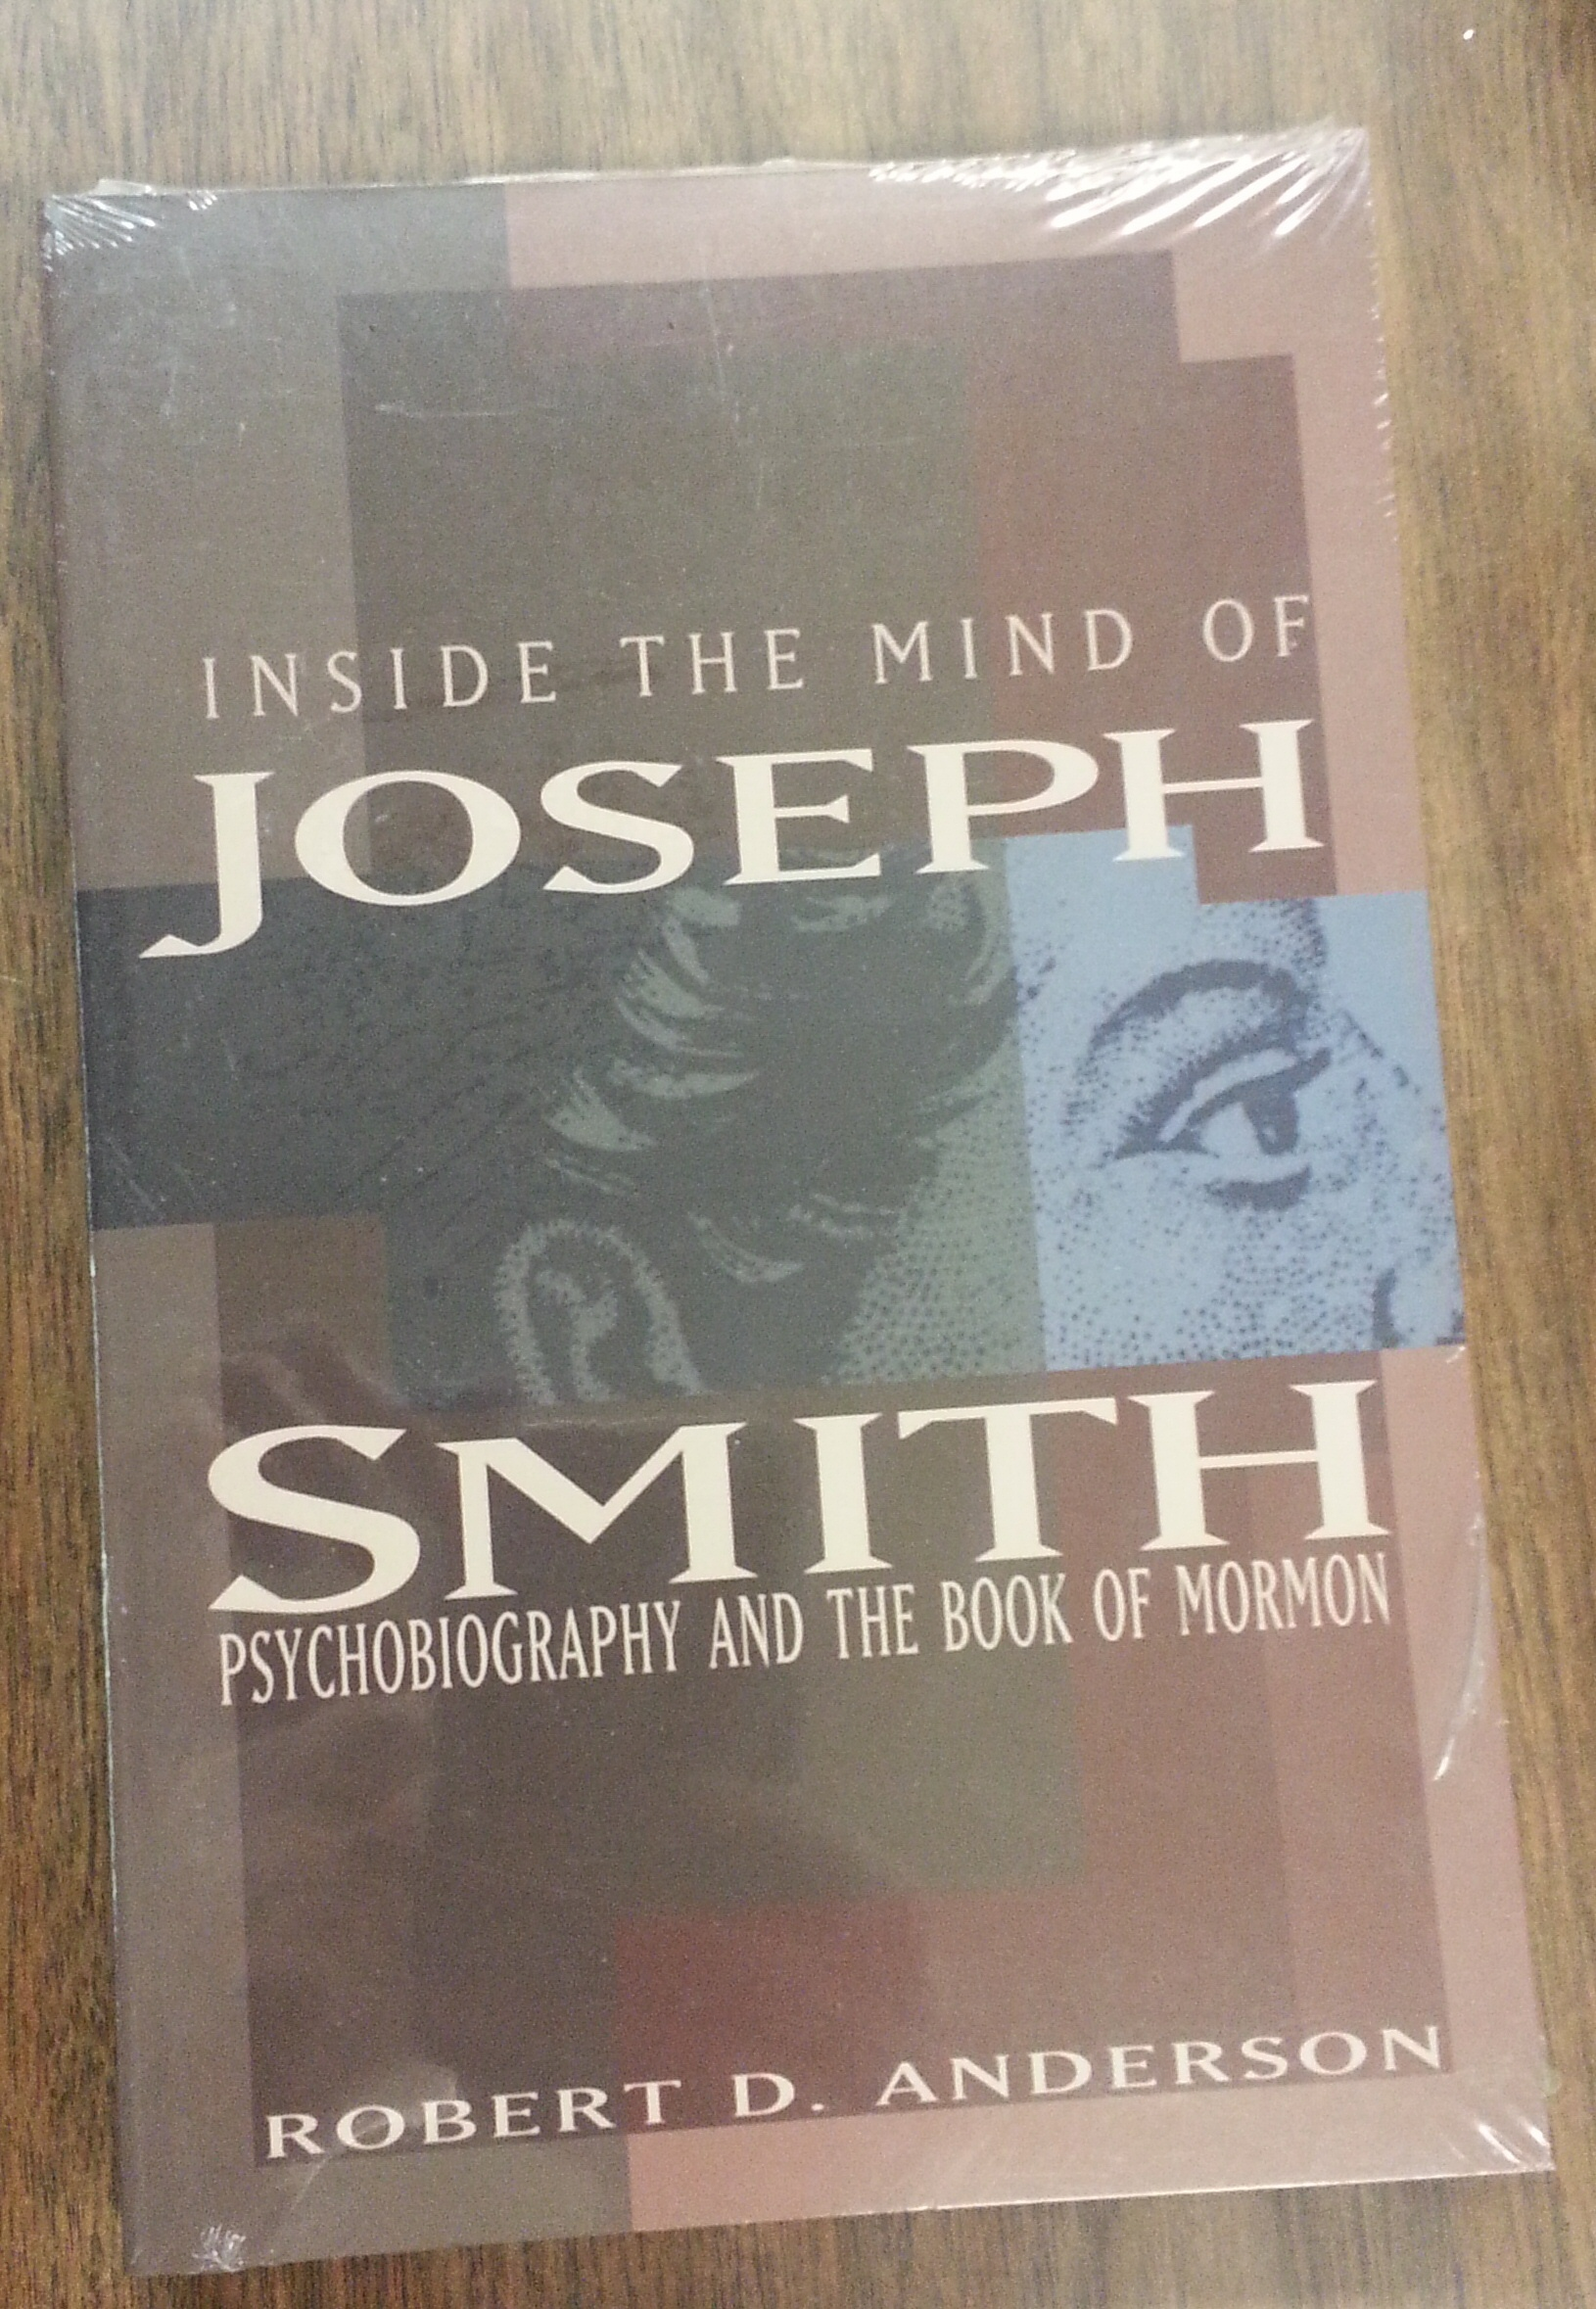 INSIDE THE MIND OF JOSEPH SMITH - Psychobiography and the Book of Mormon, Anderson, Robert D.